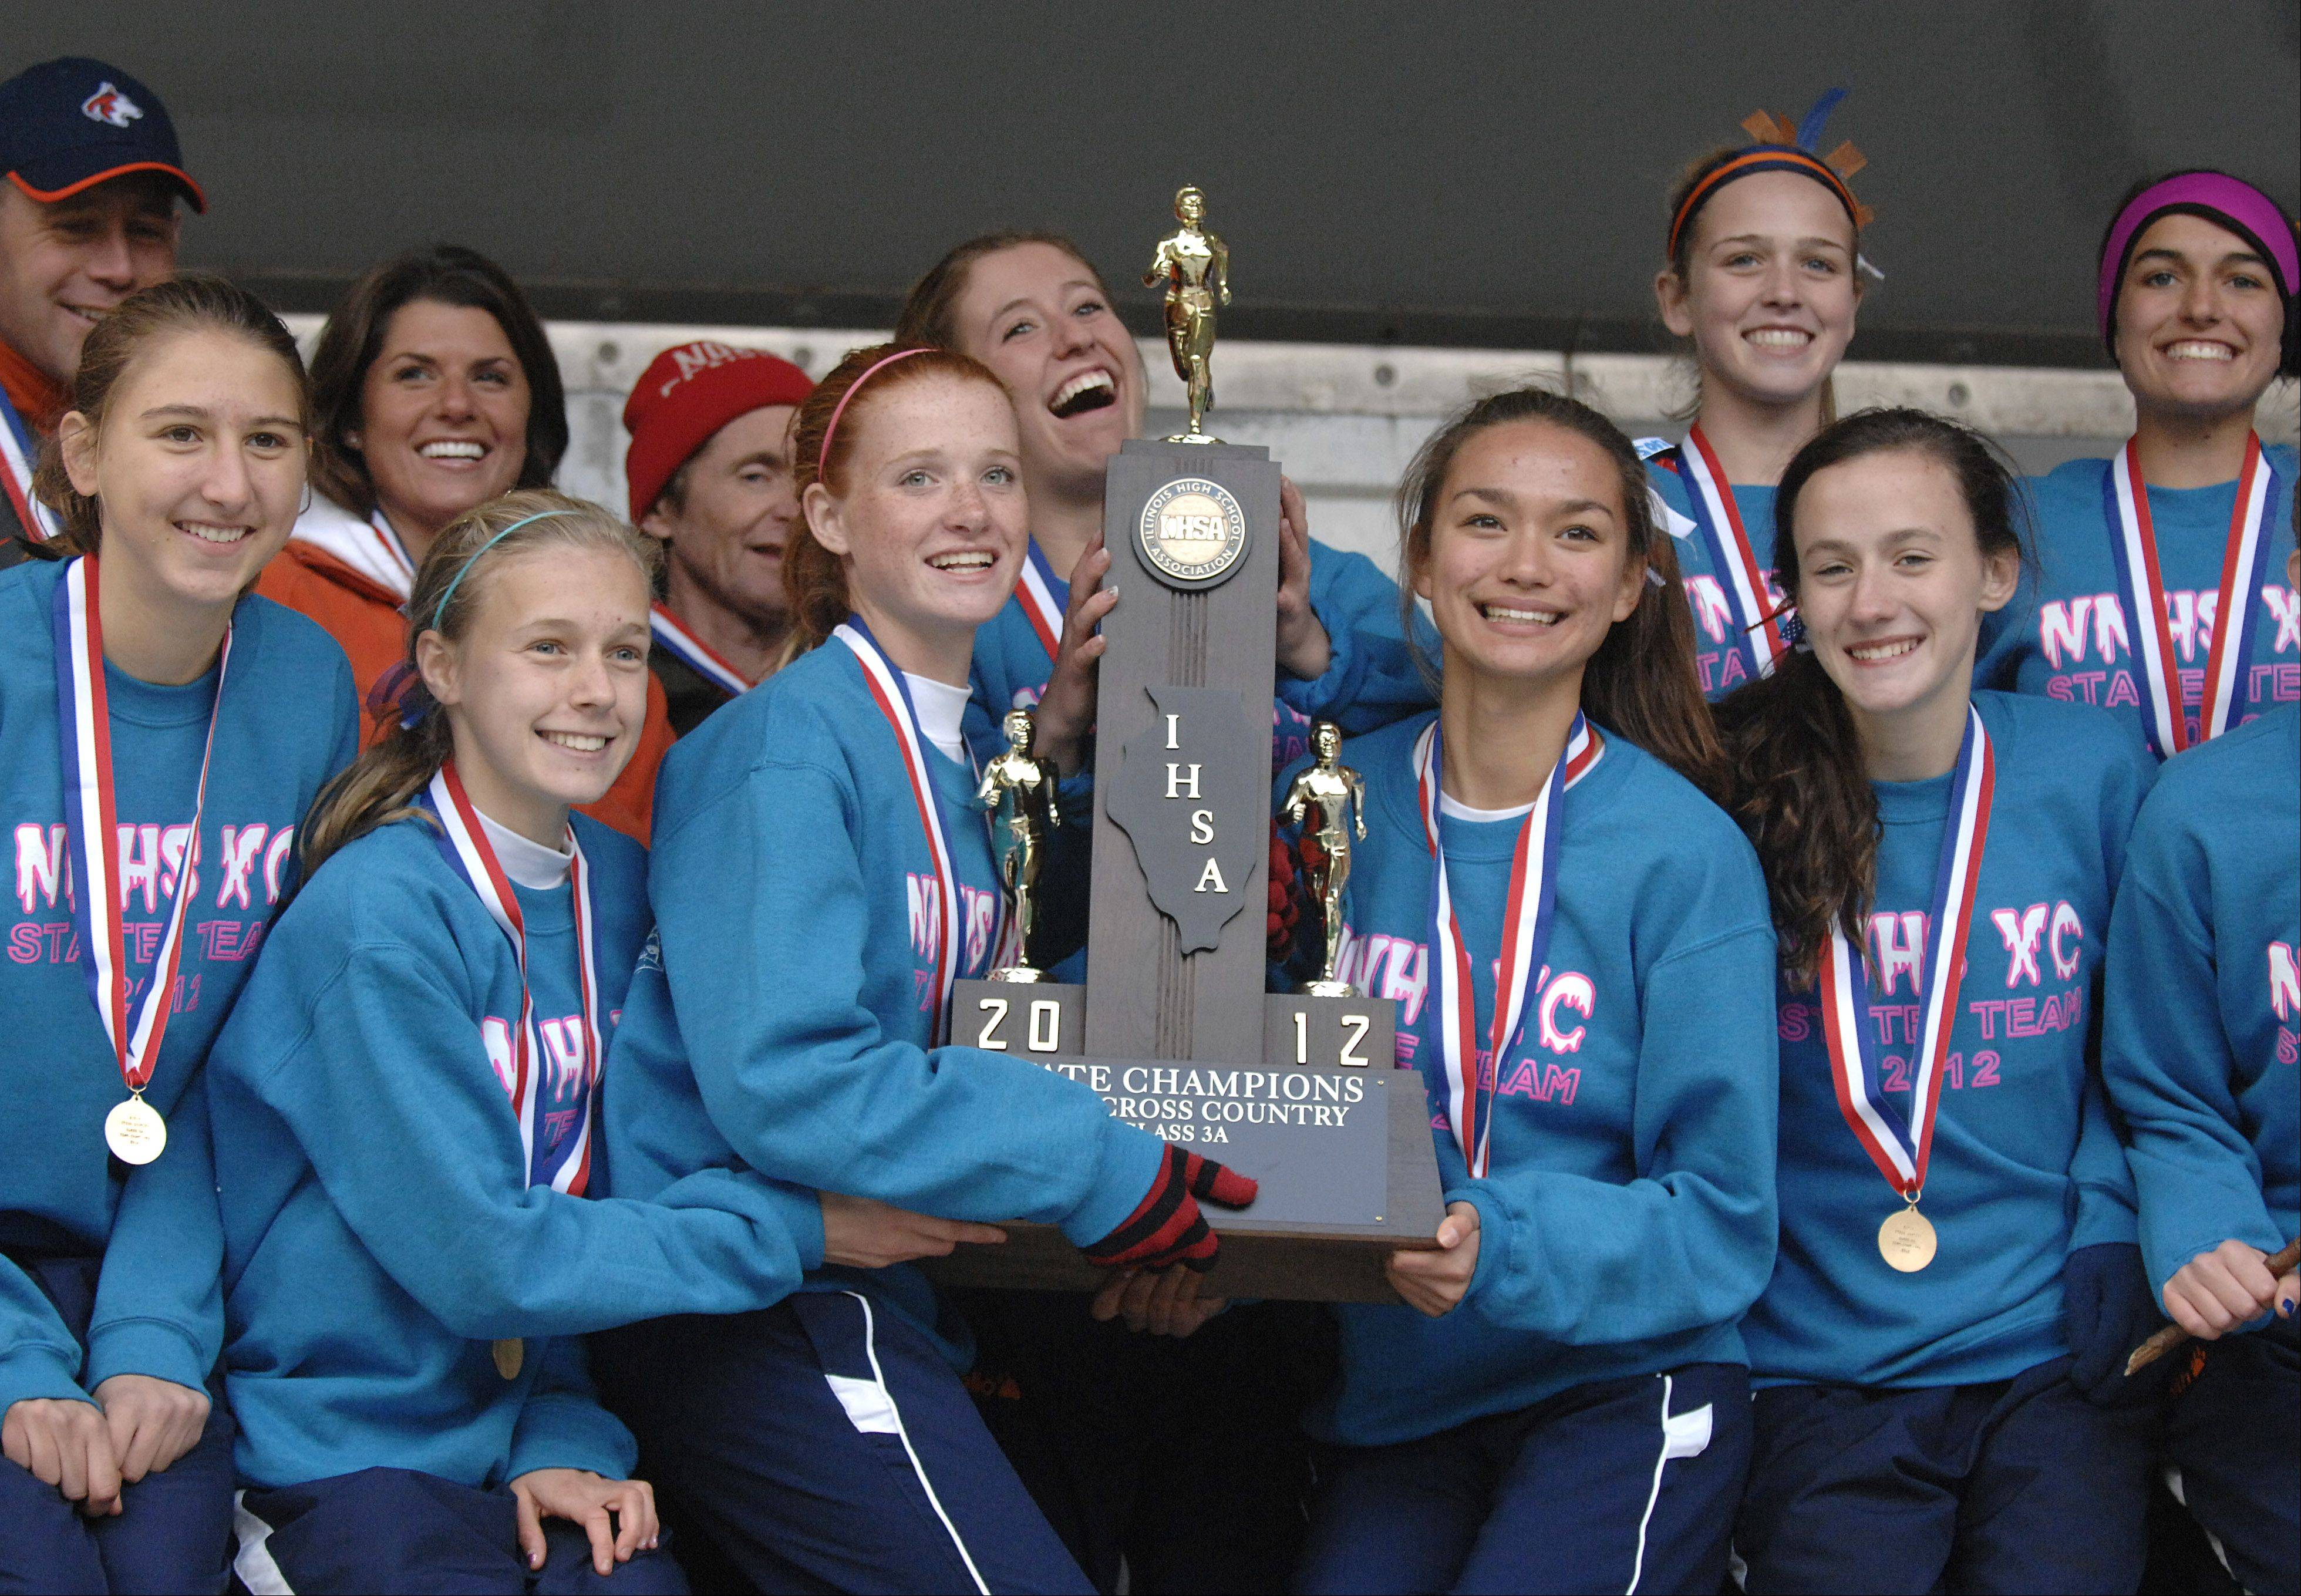 Naperville North poses for photos for fans with their 3A first place trophy at the cross country state finals in Peoria on Saturday, November 3.